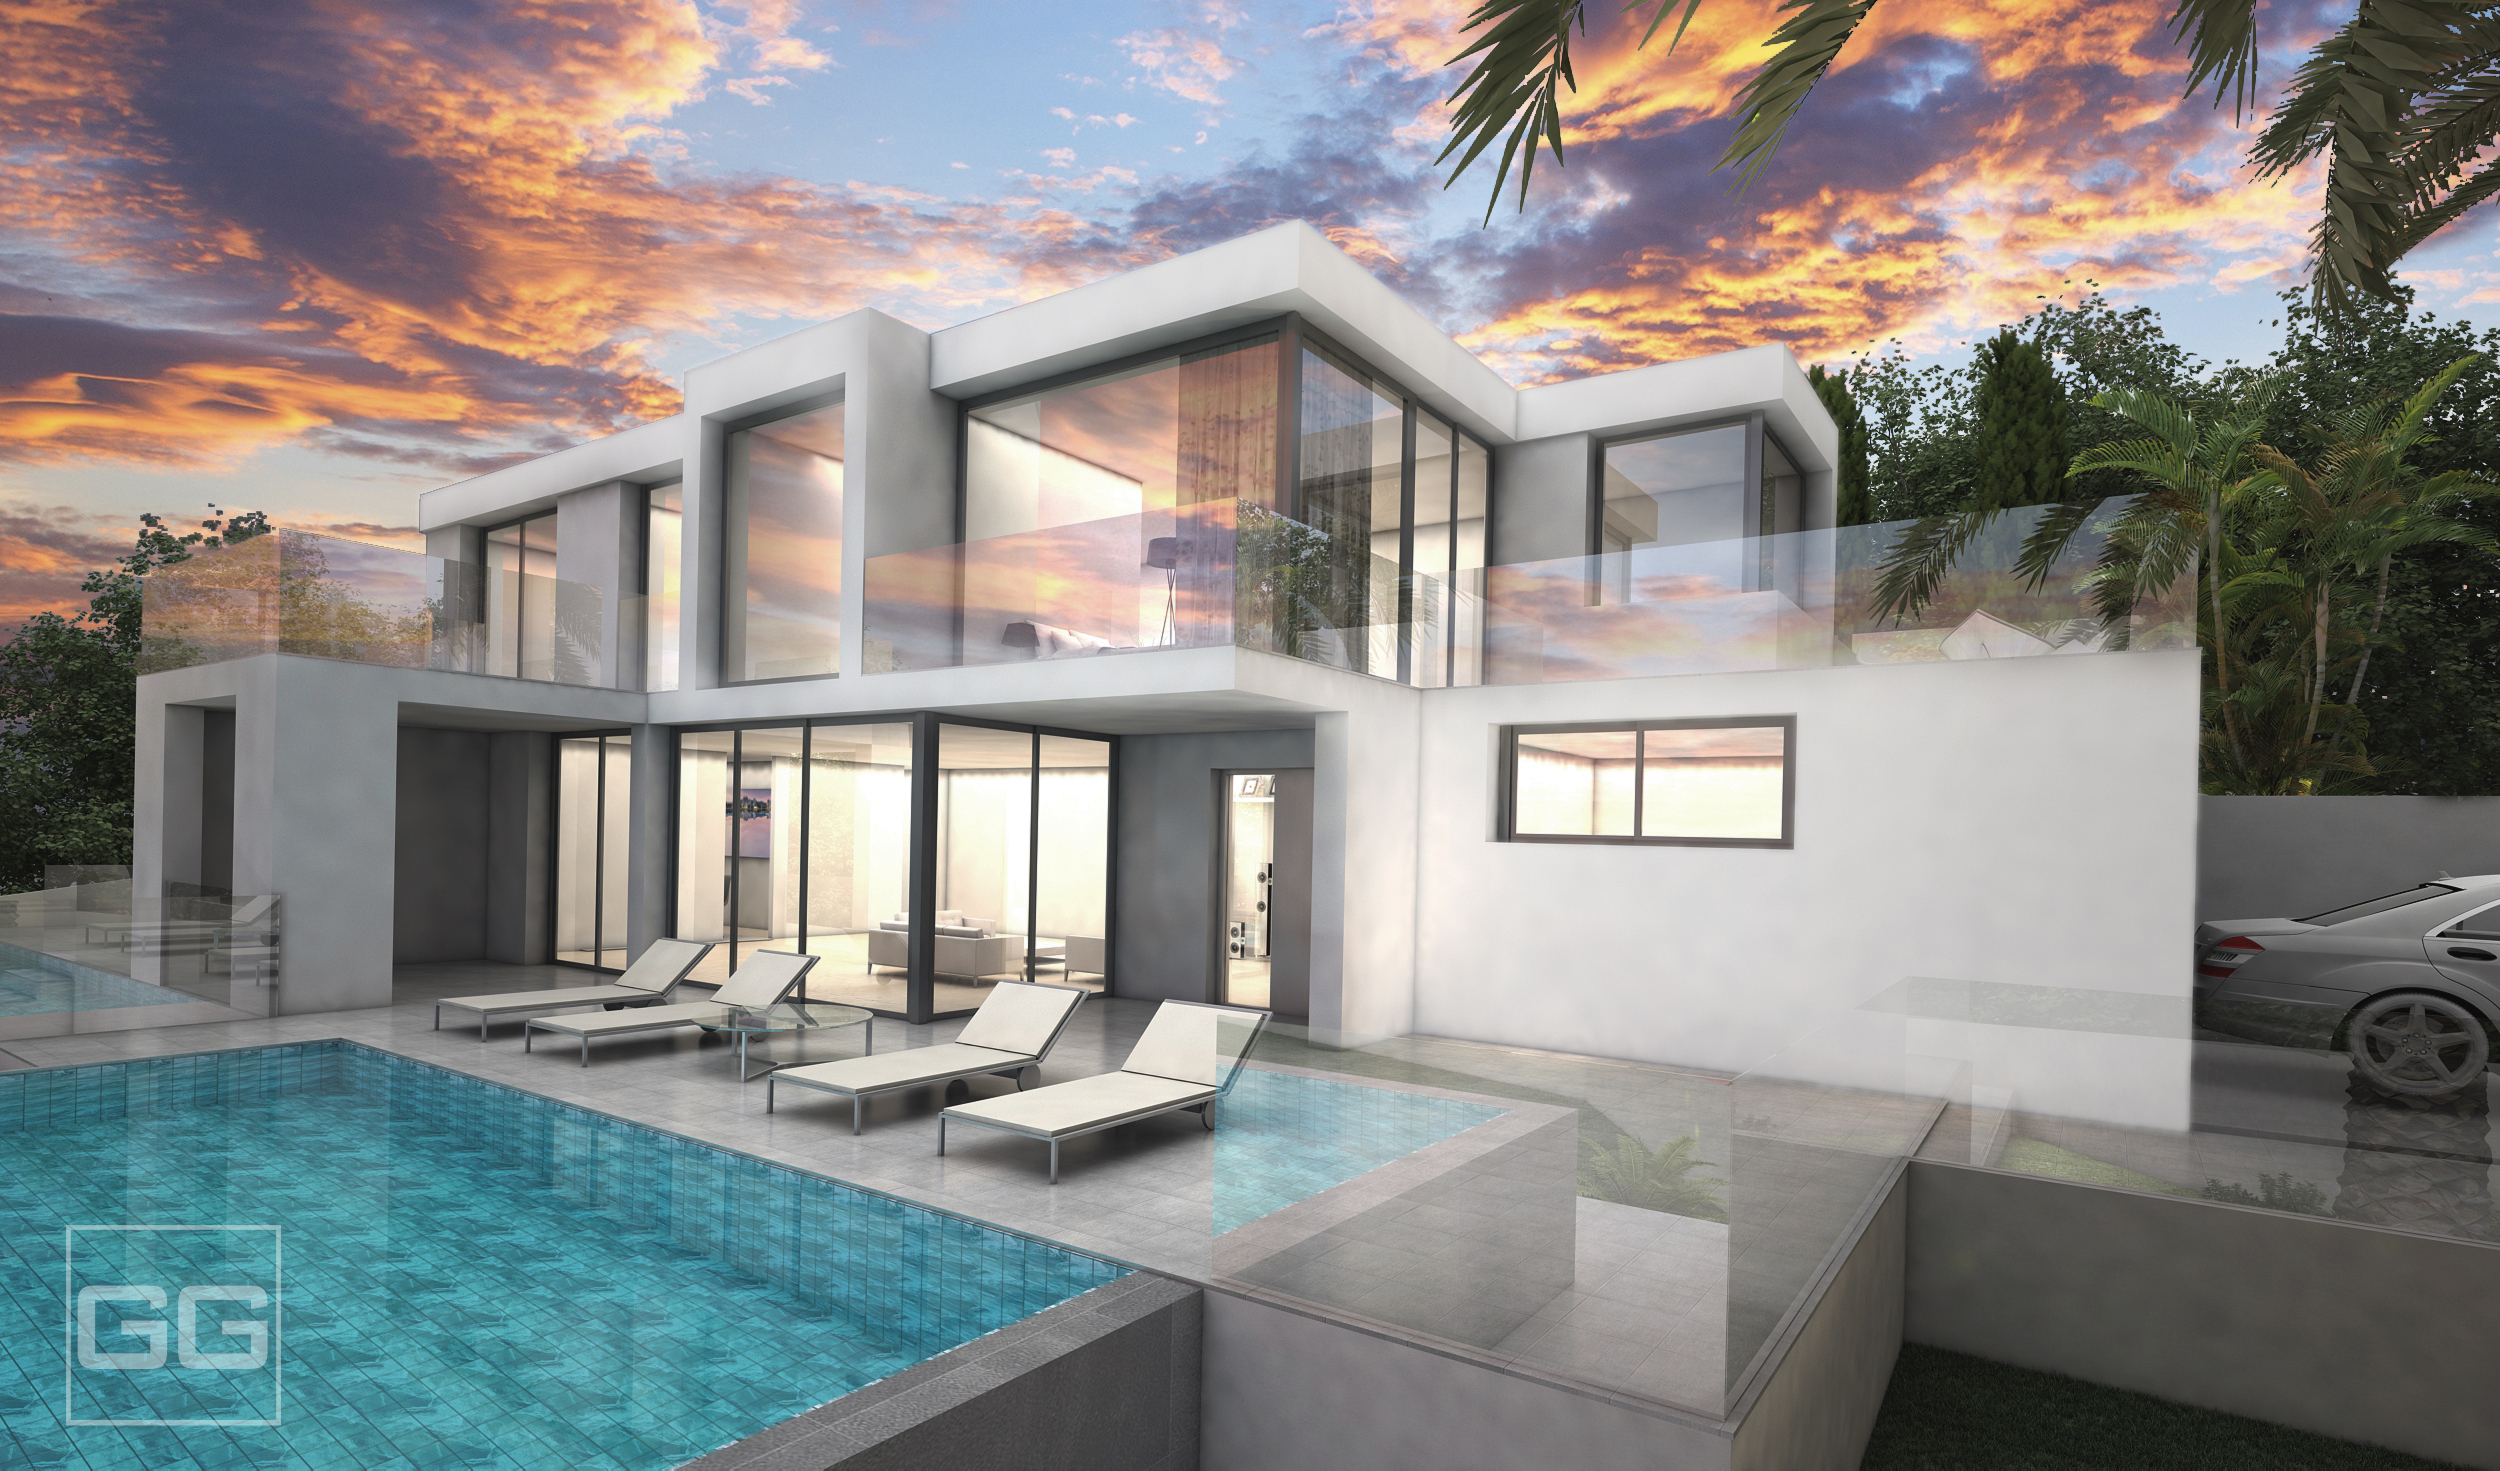 New Build in Altea